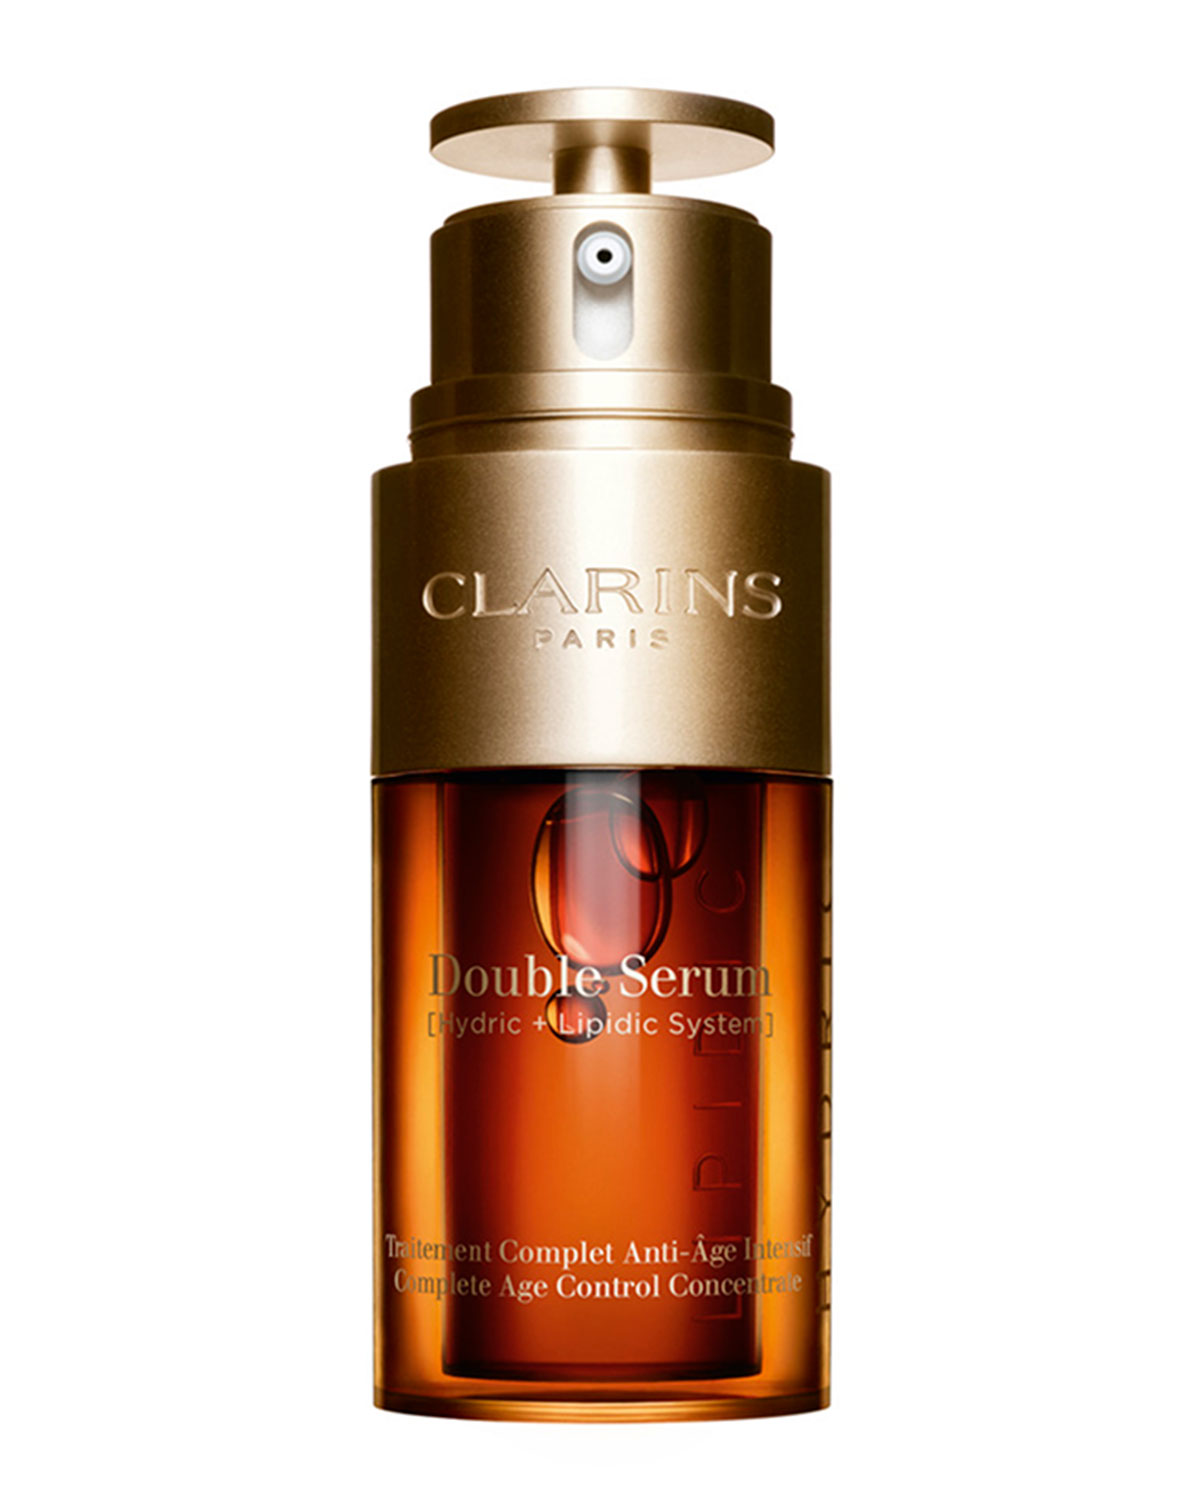 Clarins 1 oz. Double Serum